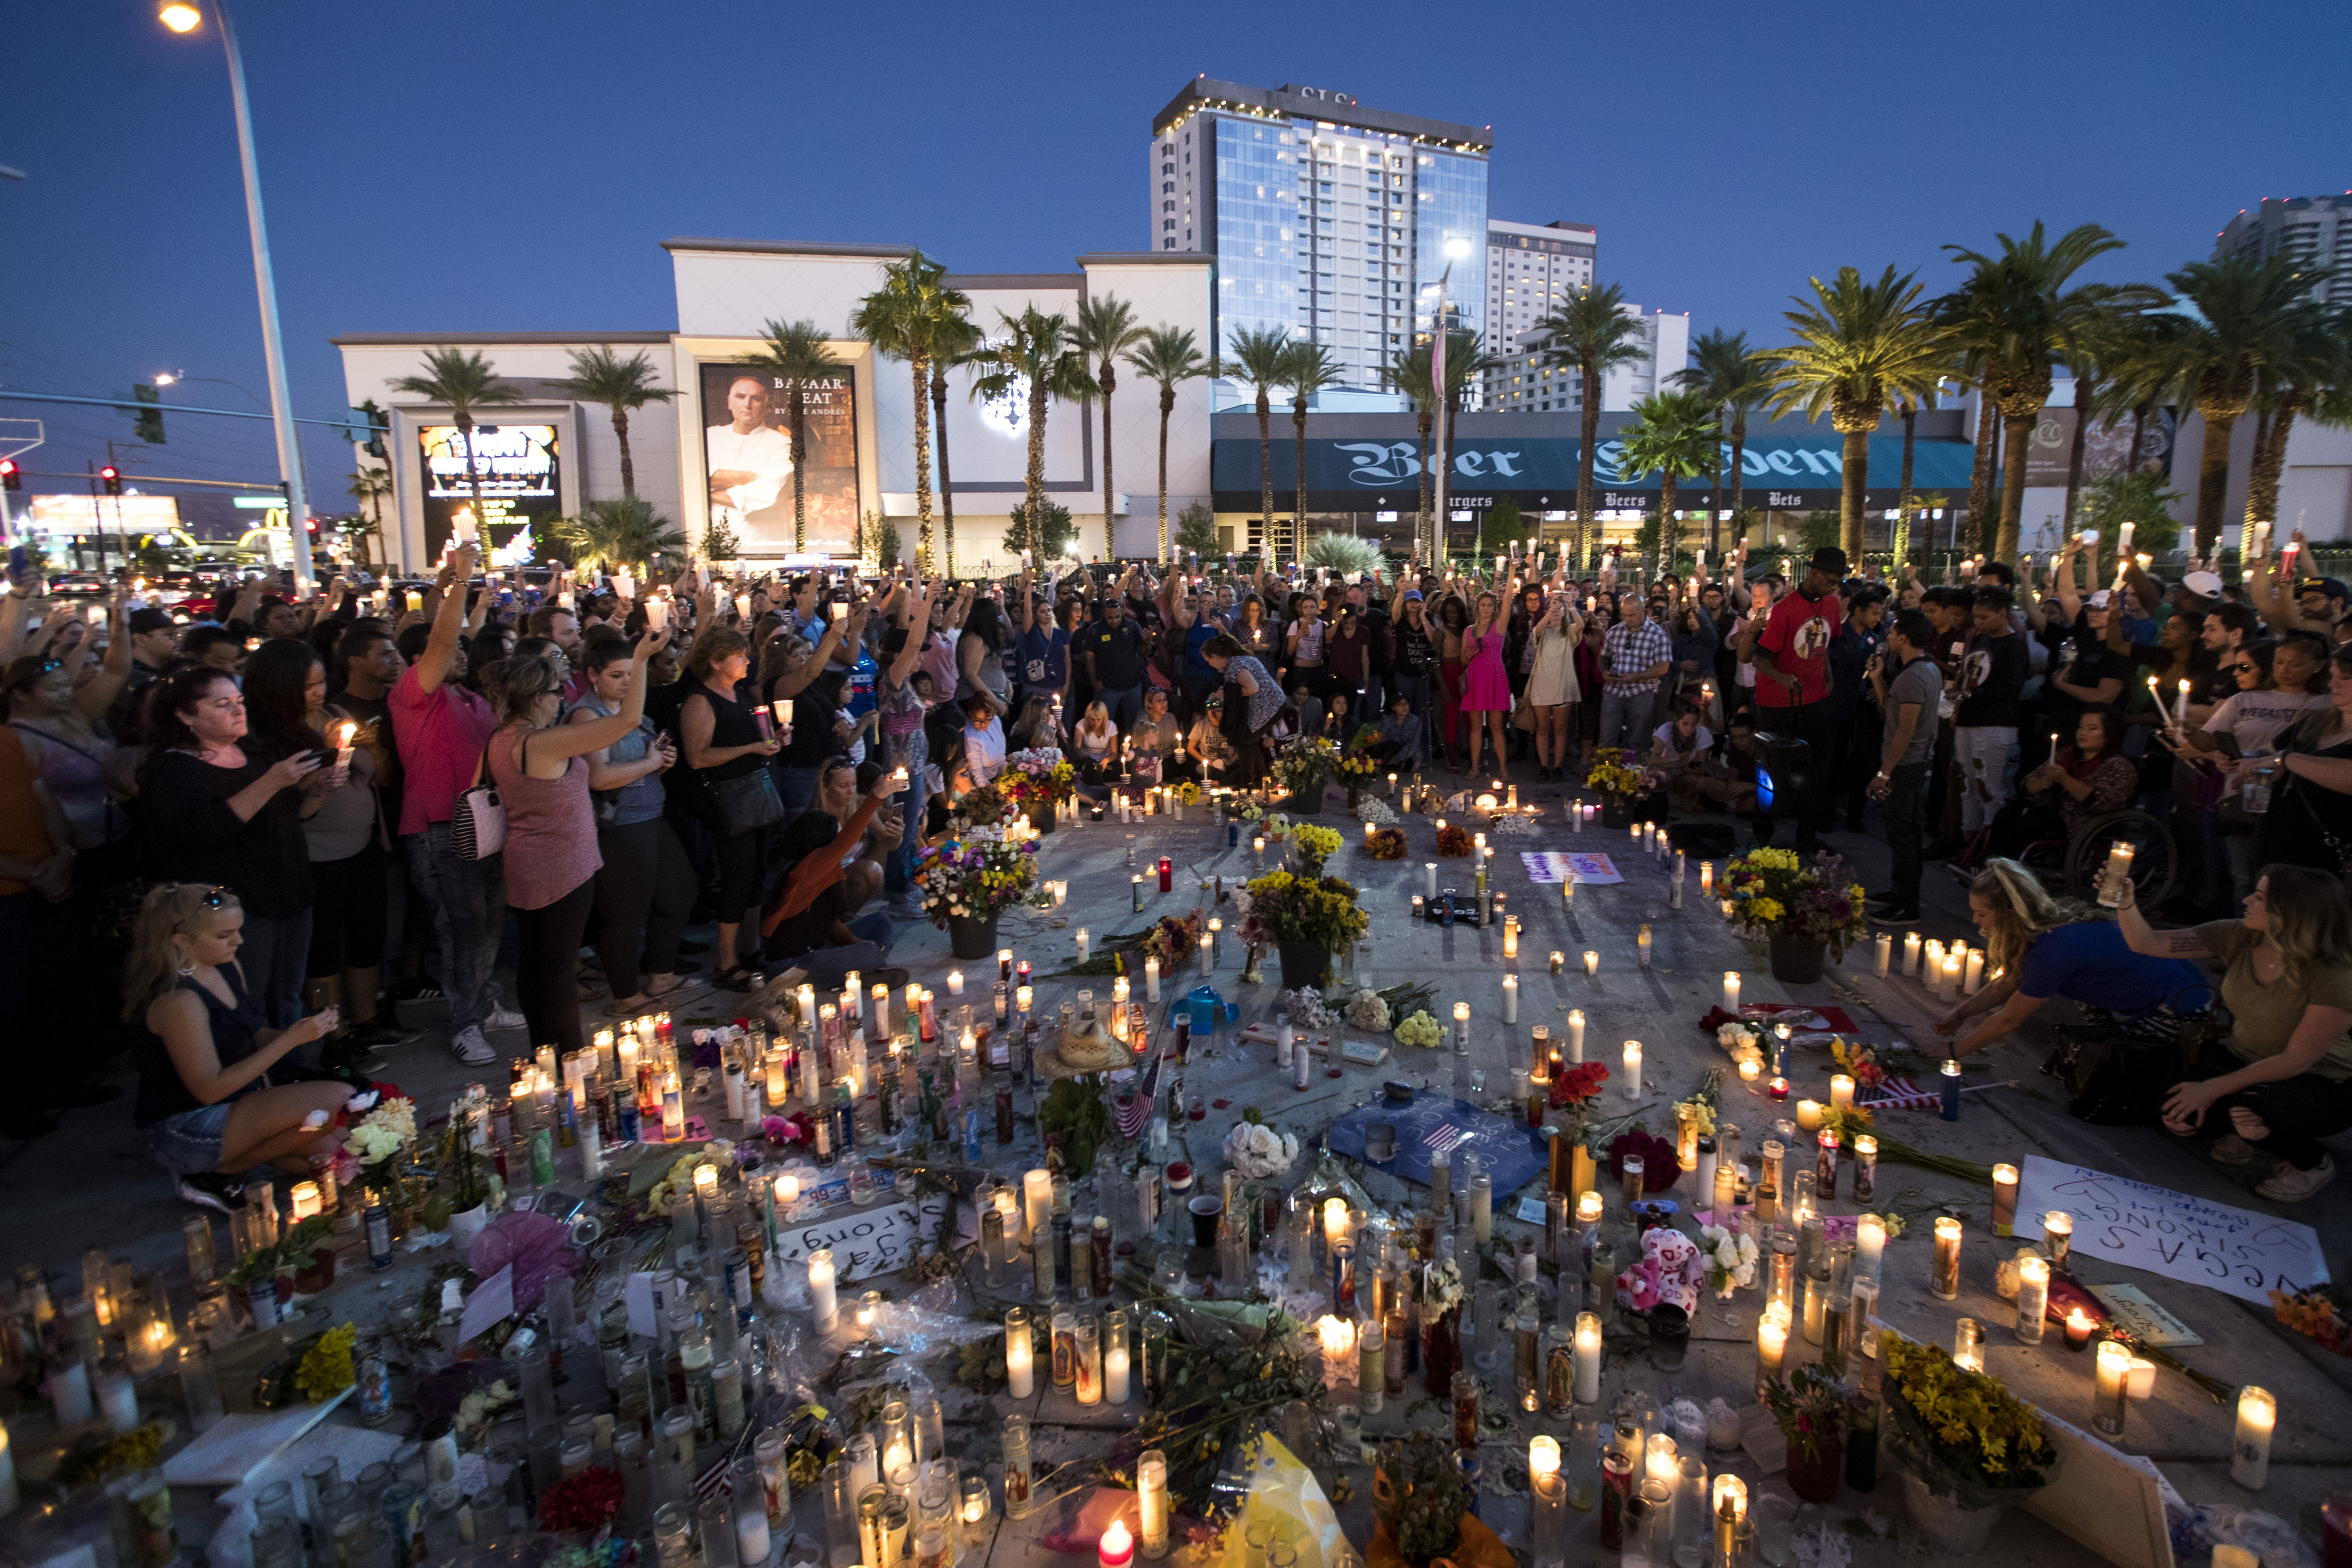 Mourners hold their candles in the air during a moment of silence during a vigil to mark one week since the mass shooting at the Route 91 Harvest country music festival, on the corner of Sahara Avenue and Las Vegas Boulevard at the north end of the Las Vegas Strip, on October 8, 2017, in Las Vegas, Nevada. On October 1, Stephen Paddock killed 58 people and injured more than 450 after he opened fire on a large crowd at the Route 91 Harvest country music festival. The massacre is one of the deadliest mass shooting events in U.S. history. (Source: Drew Angerer/Getty Images)